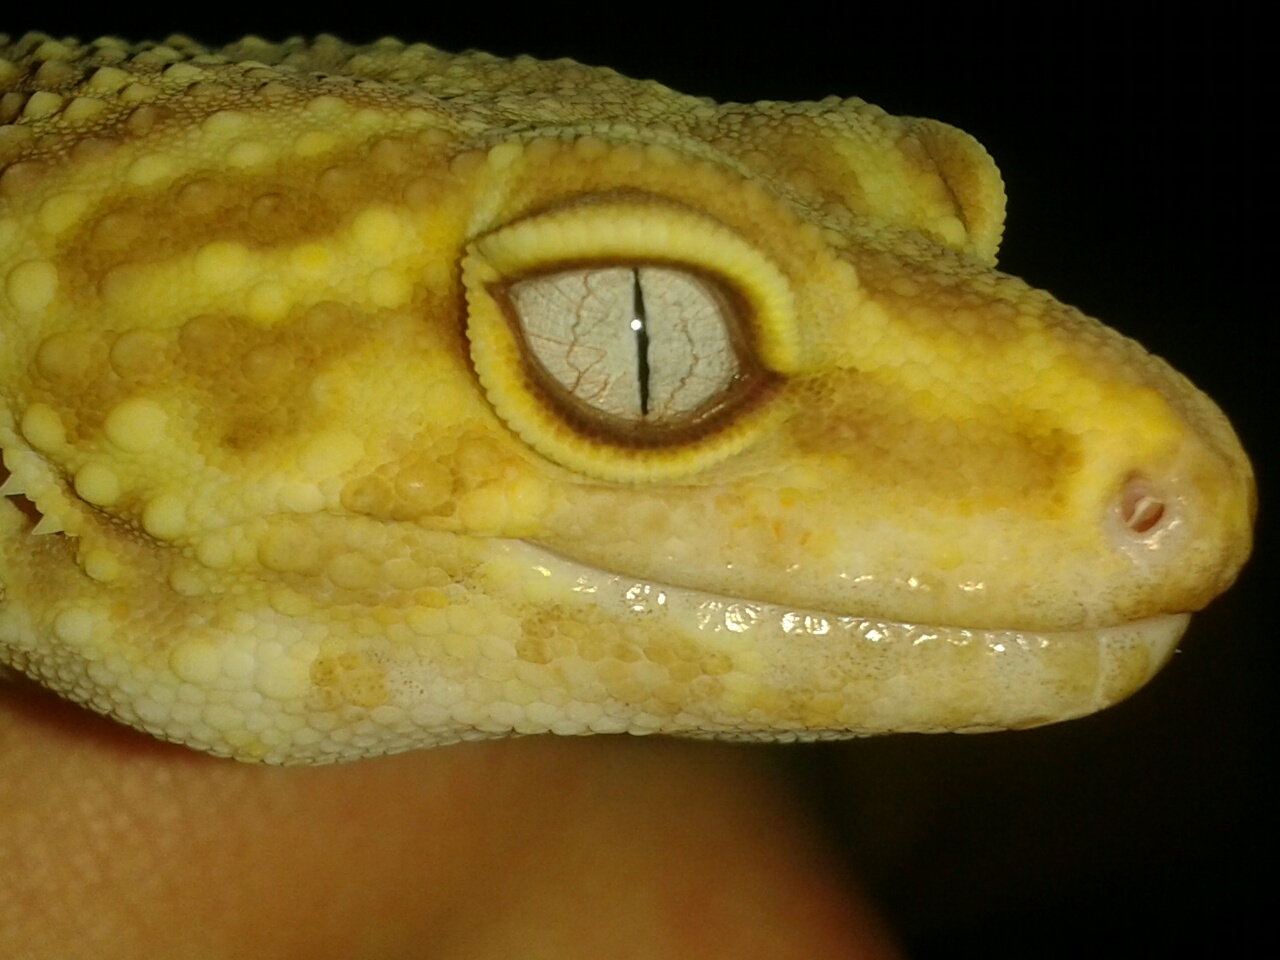 We've had our gecko about 4 years  Nothing new has changed